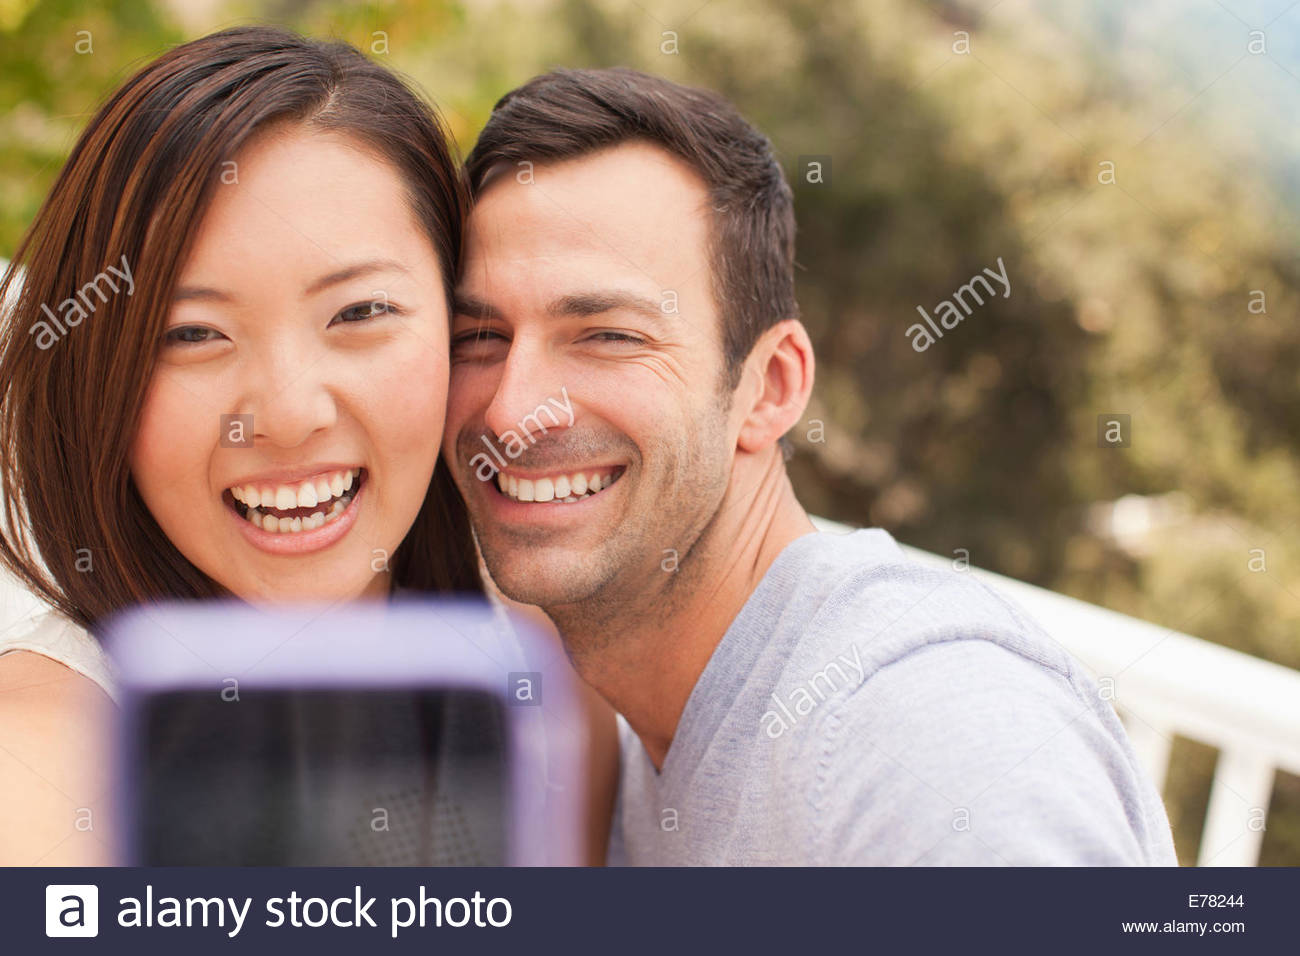 Couple taking photo d'eux-mêmes Photo Stock